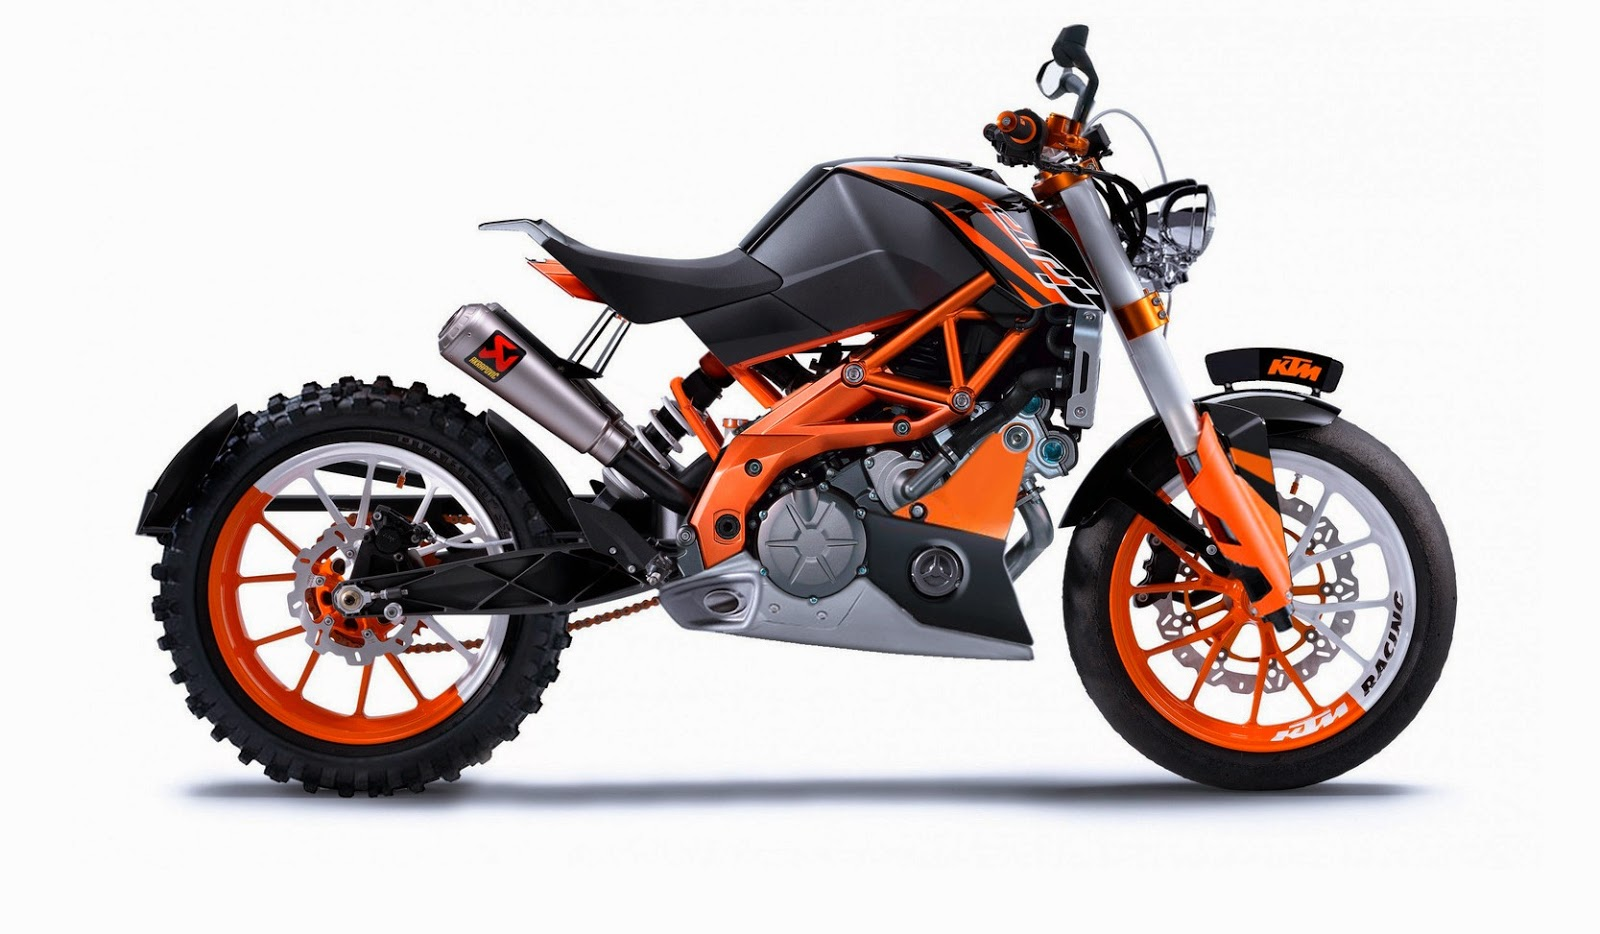 bike cars hd wallpapers ktm 125 duke pp motorcycles hd wallpapers. Black Bedroom Furniture Sets. Home Design Ideas